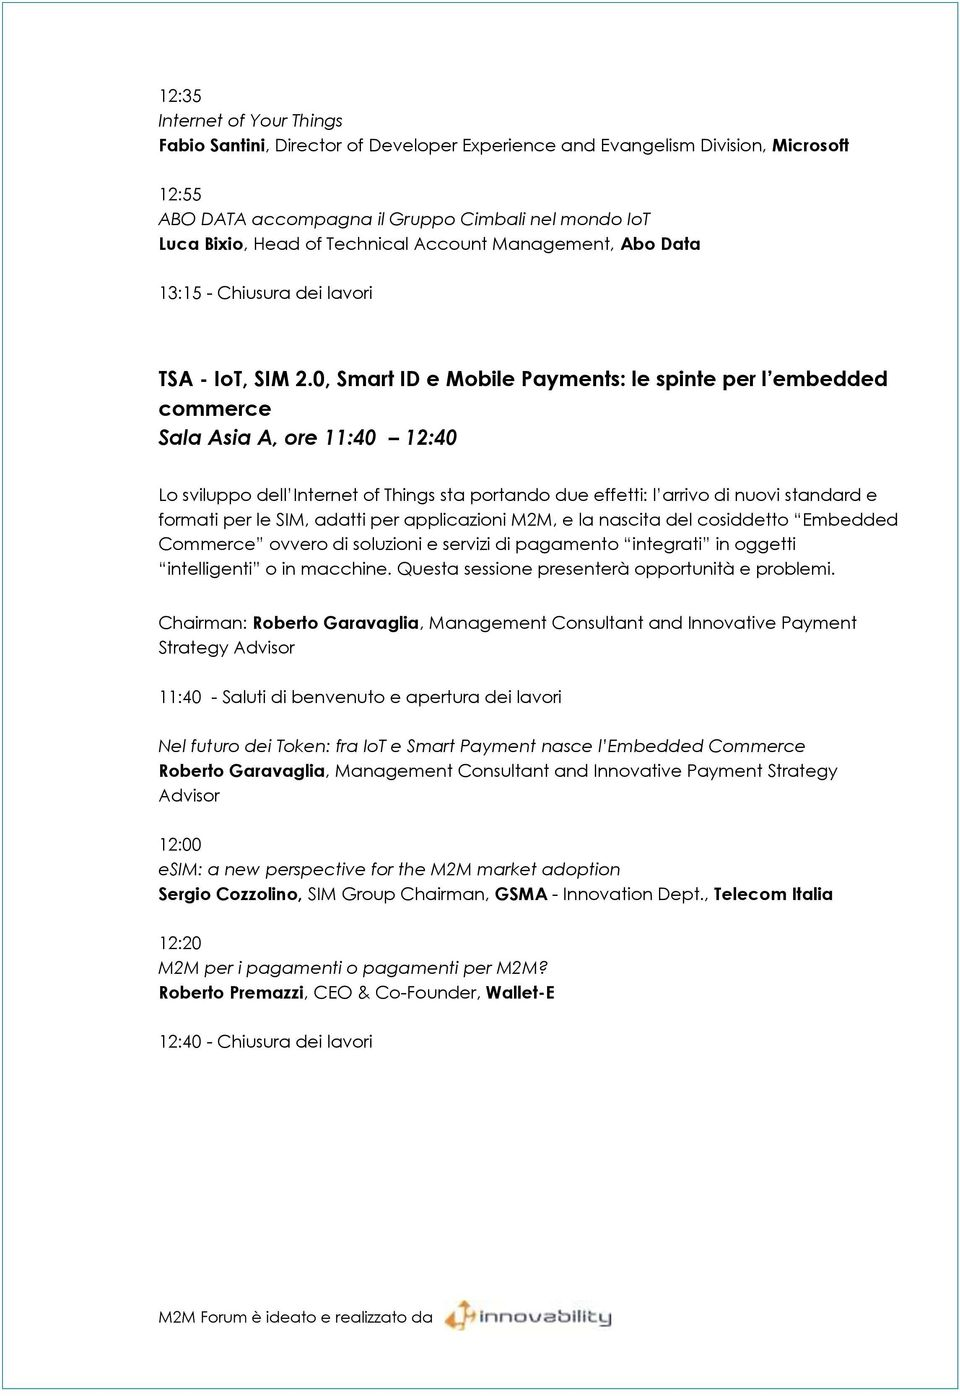 0, Smart ID e Mobile Payments: le spinte per l embedded commerce Sala Asia A, ore 11:40 12:40 Lo sviluppo dell Internet of Things sta portando due effetti: l arrivo di nuovi standard e formati per le